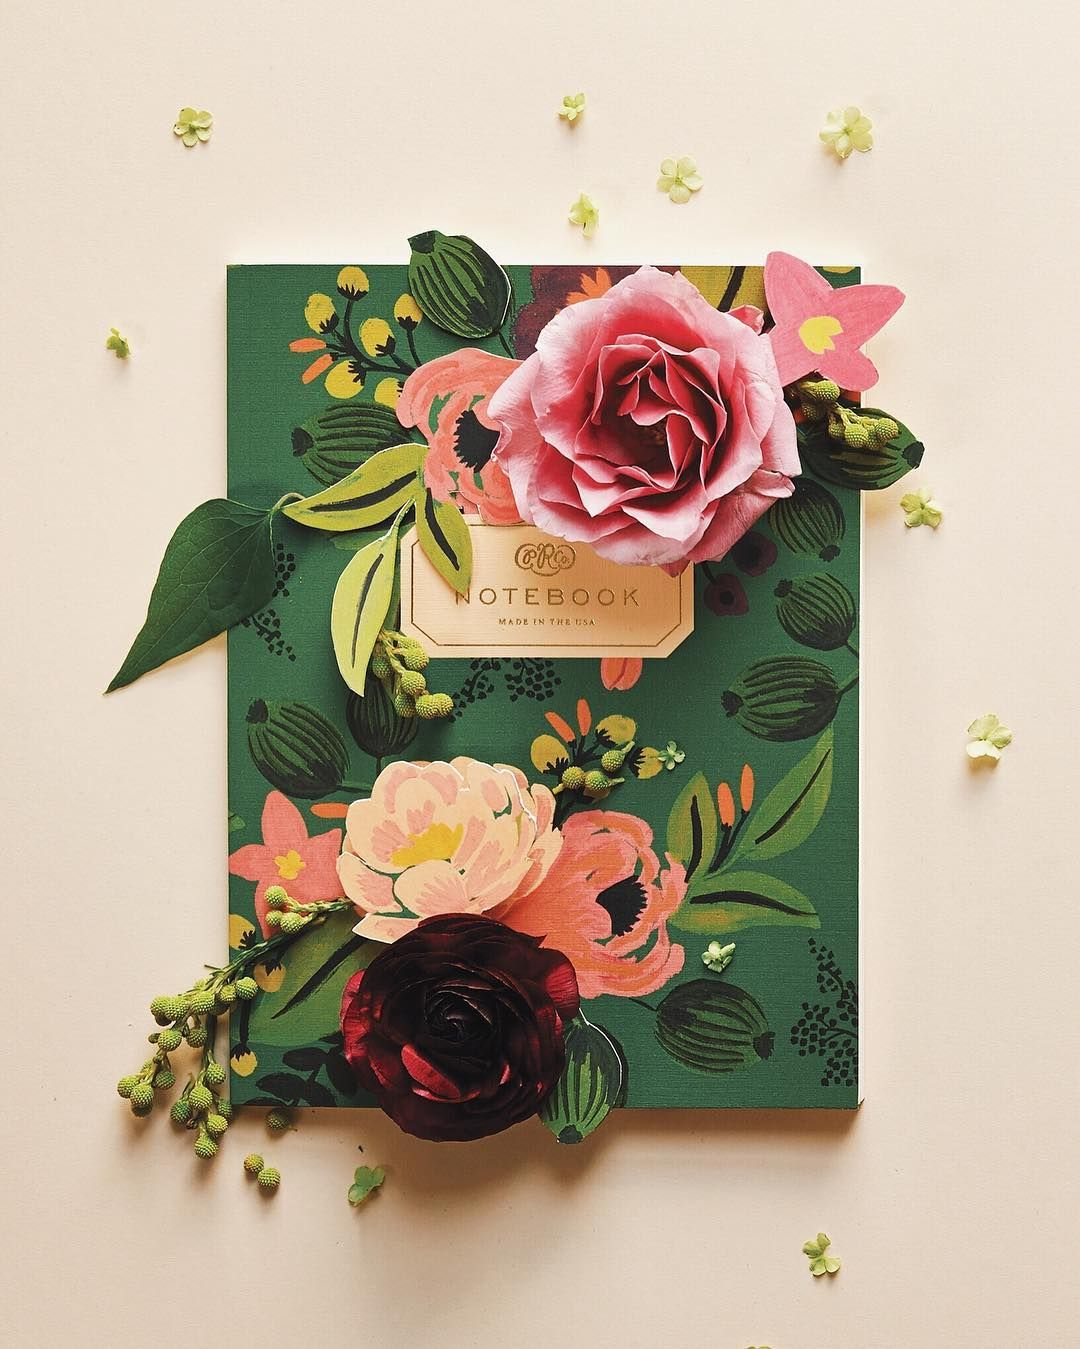 anna rifle bond notebook pink roses and garden inspiration